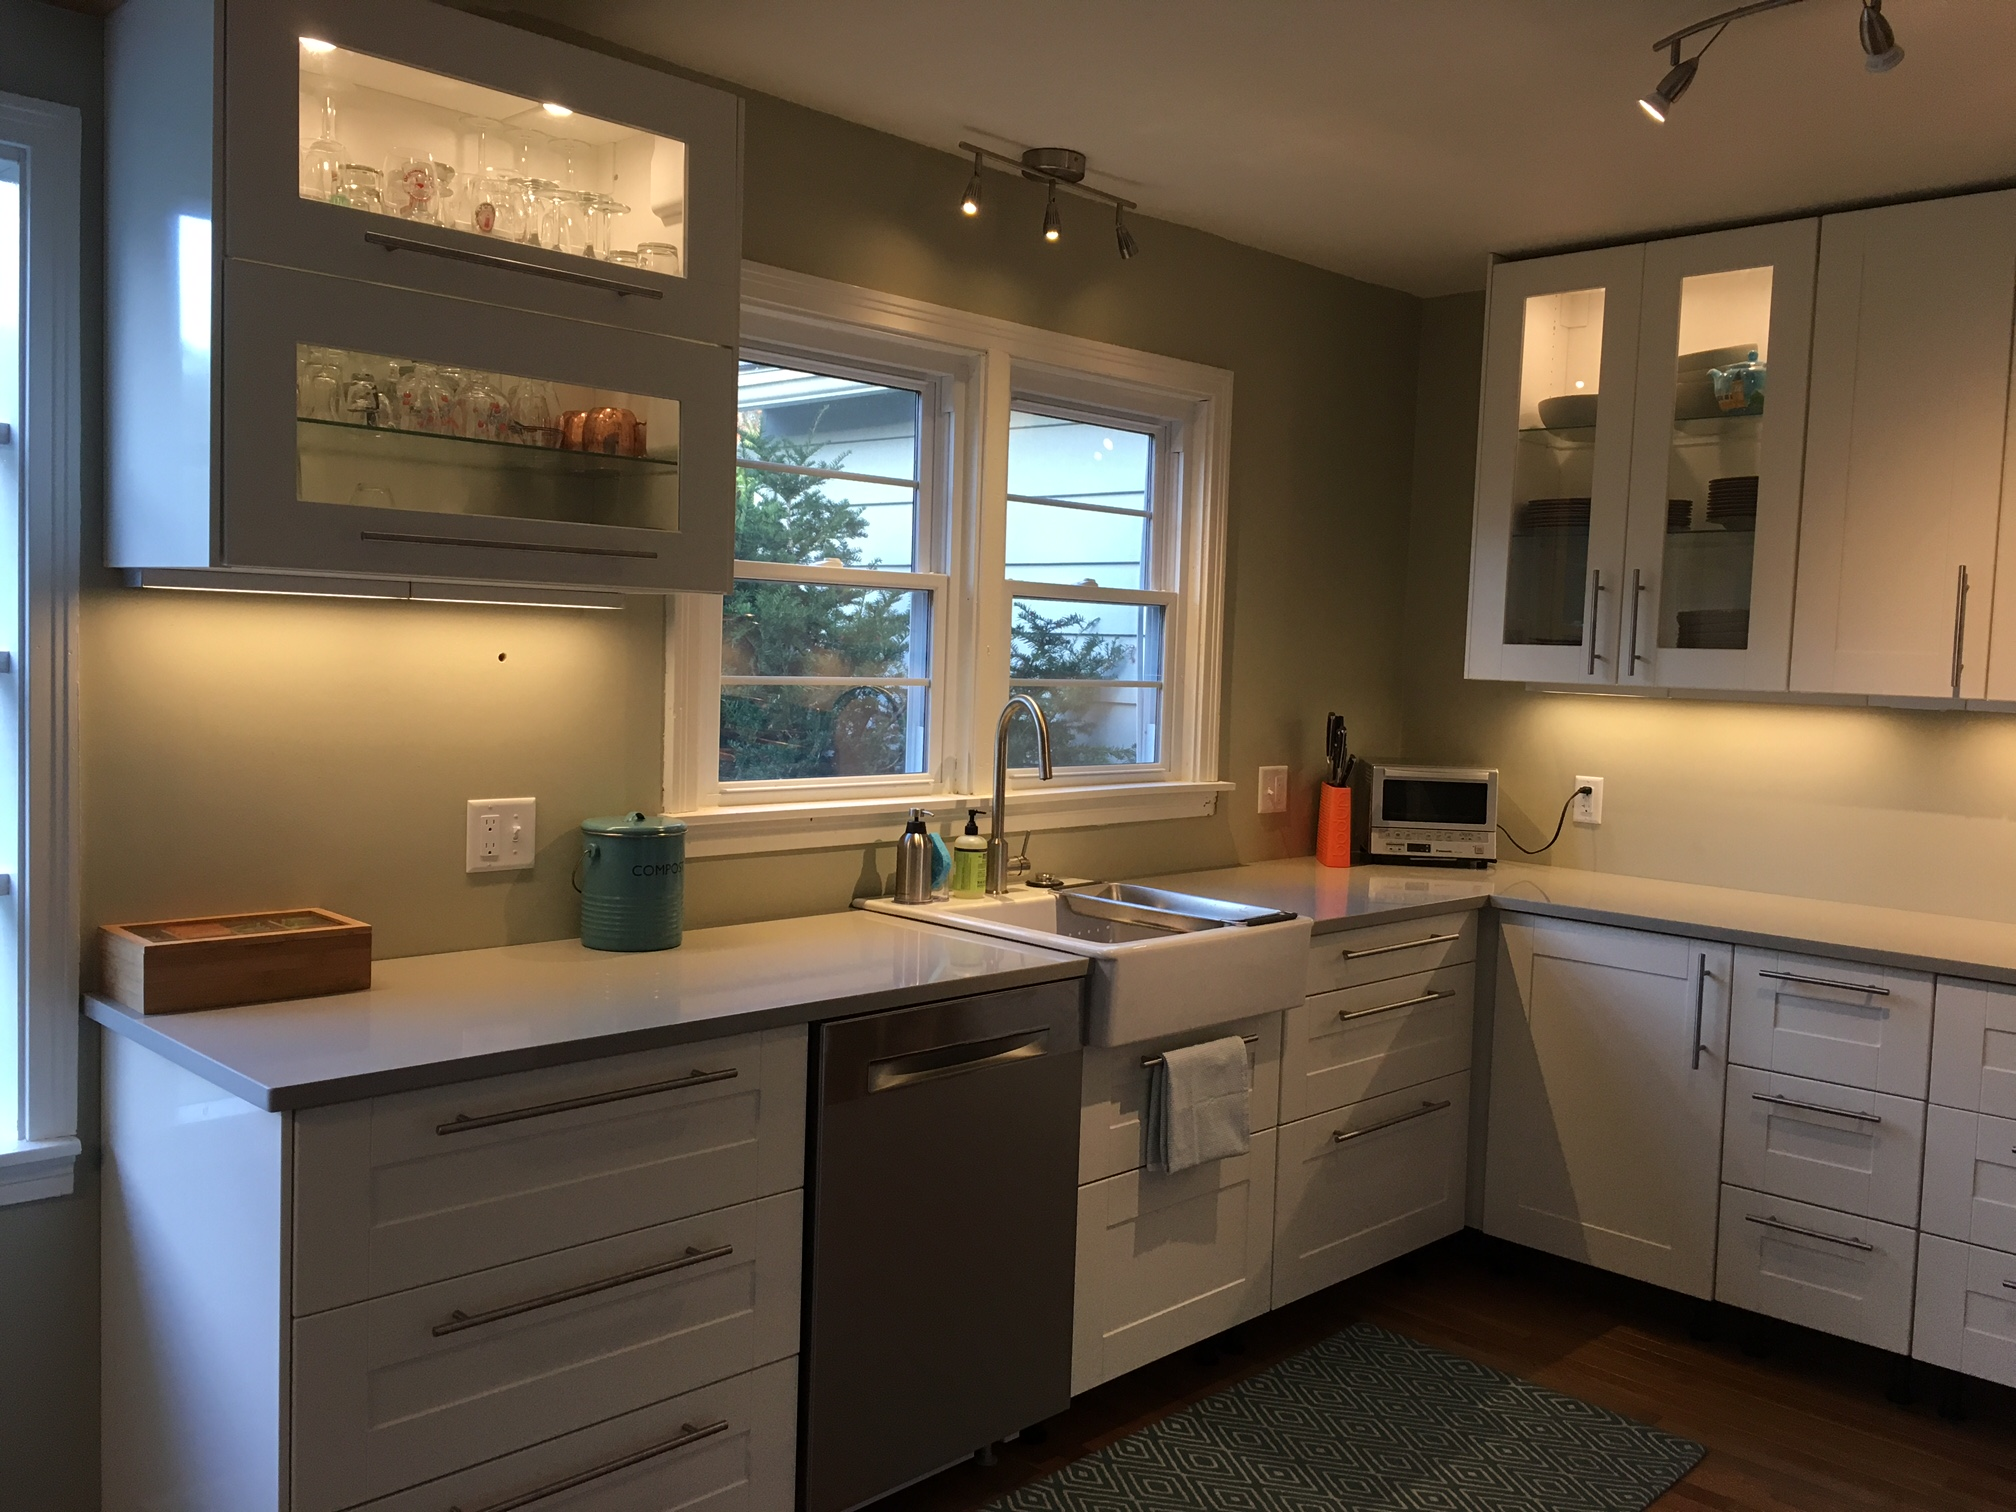 A Gorgeous Ikea Kitchen Renovation In Upstate New York